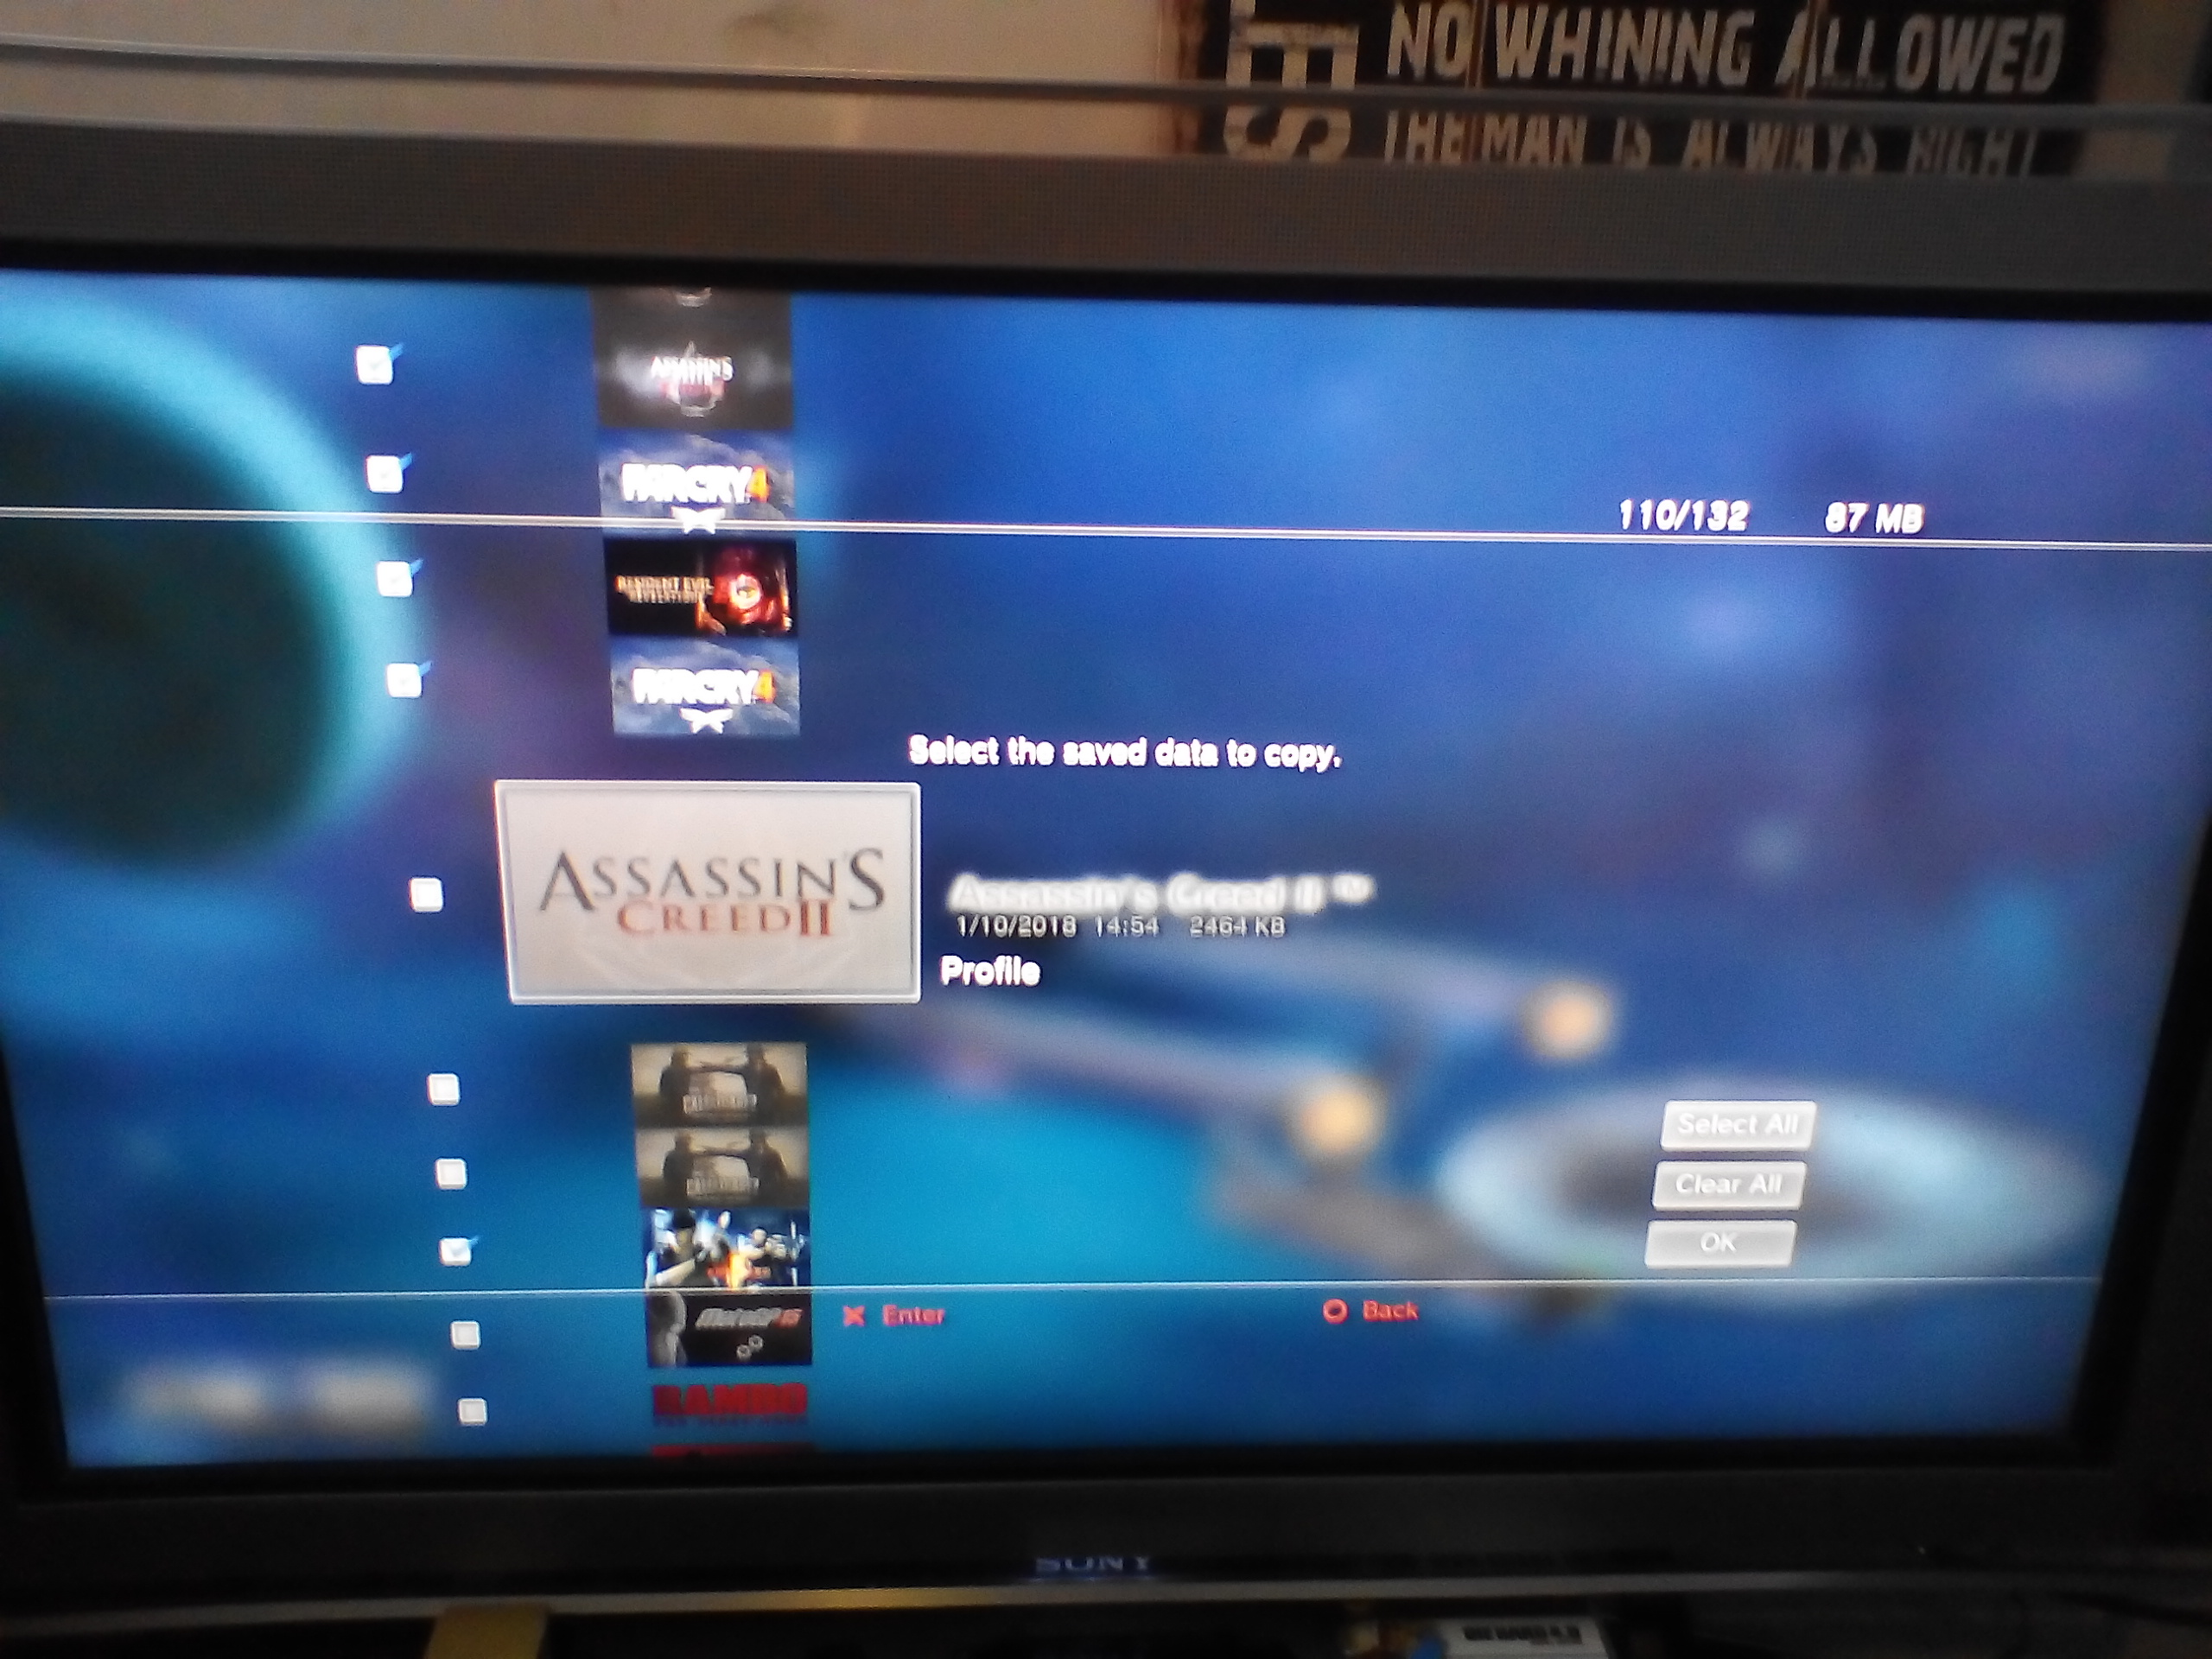 PS3 - Backed up saves FROM OLD SYSTEM not copying to new system